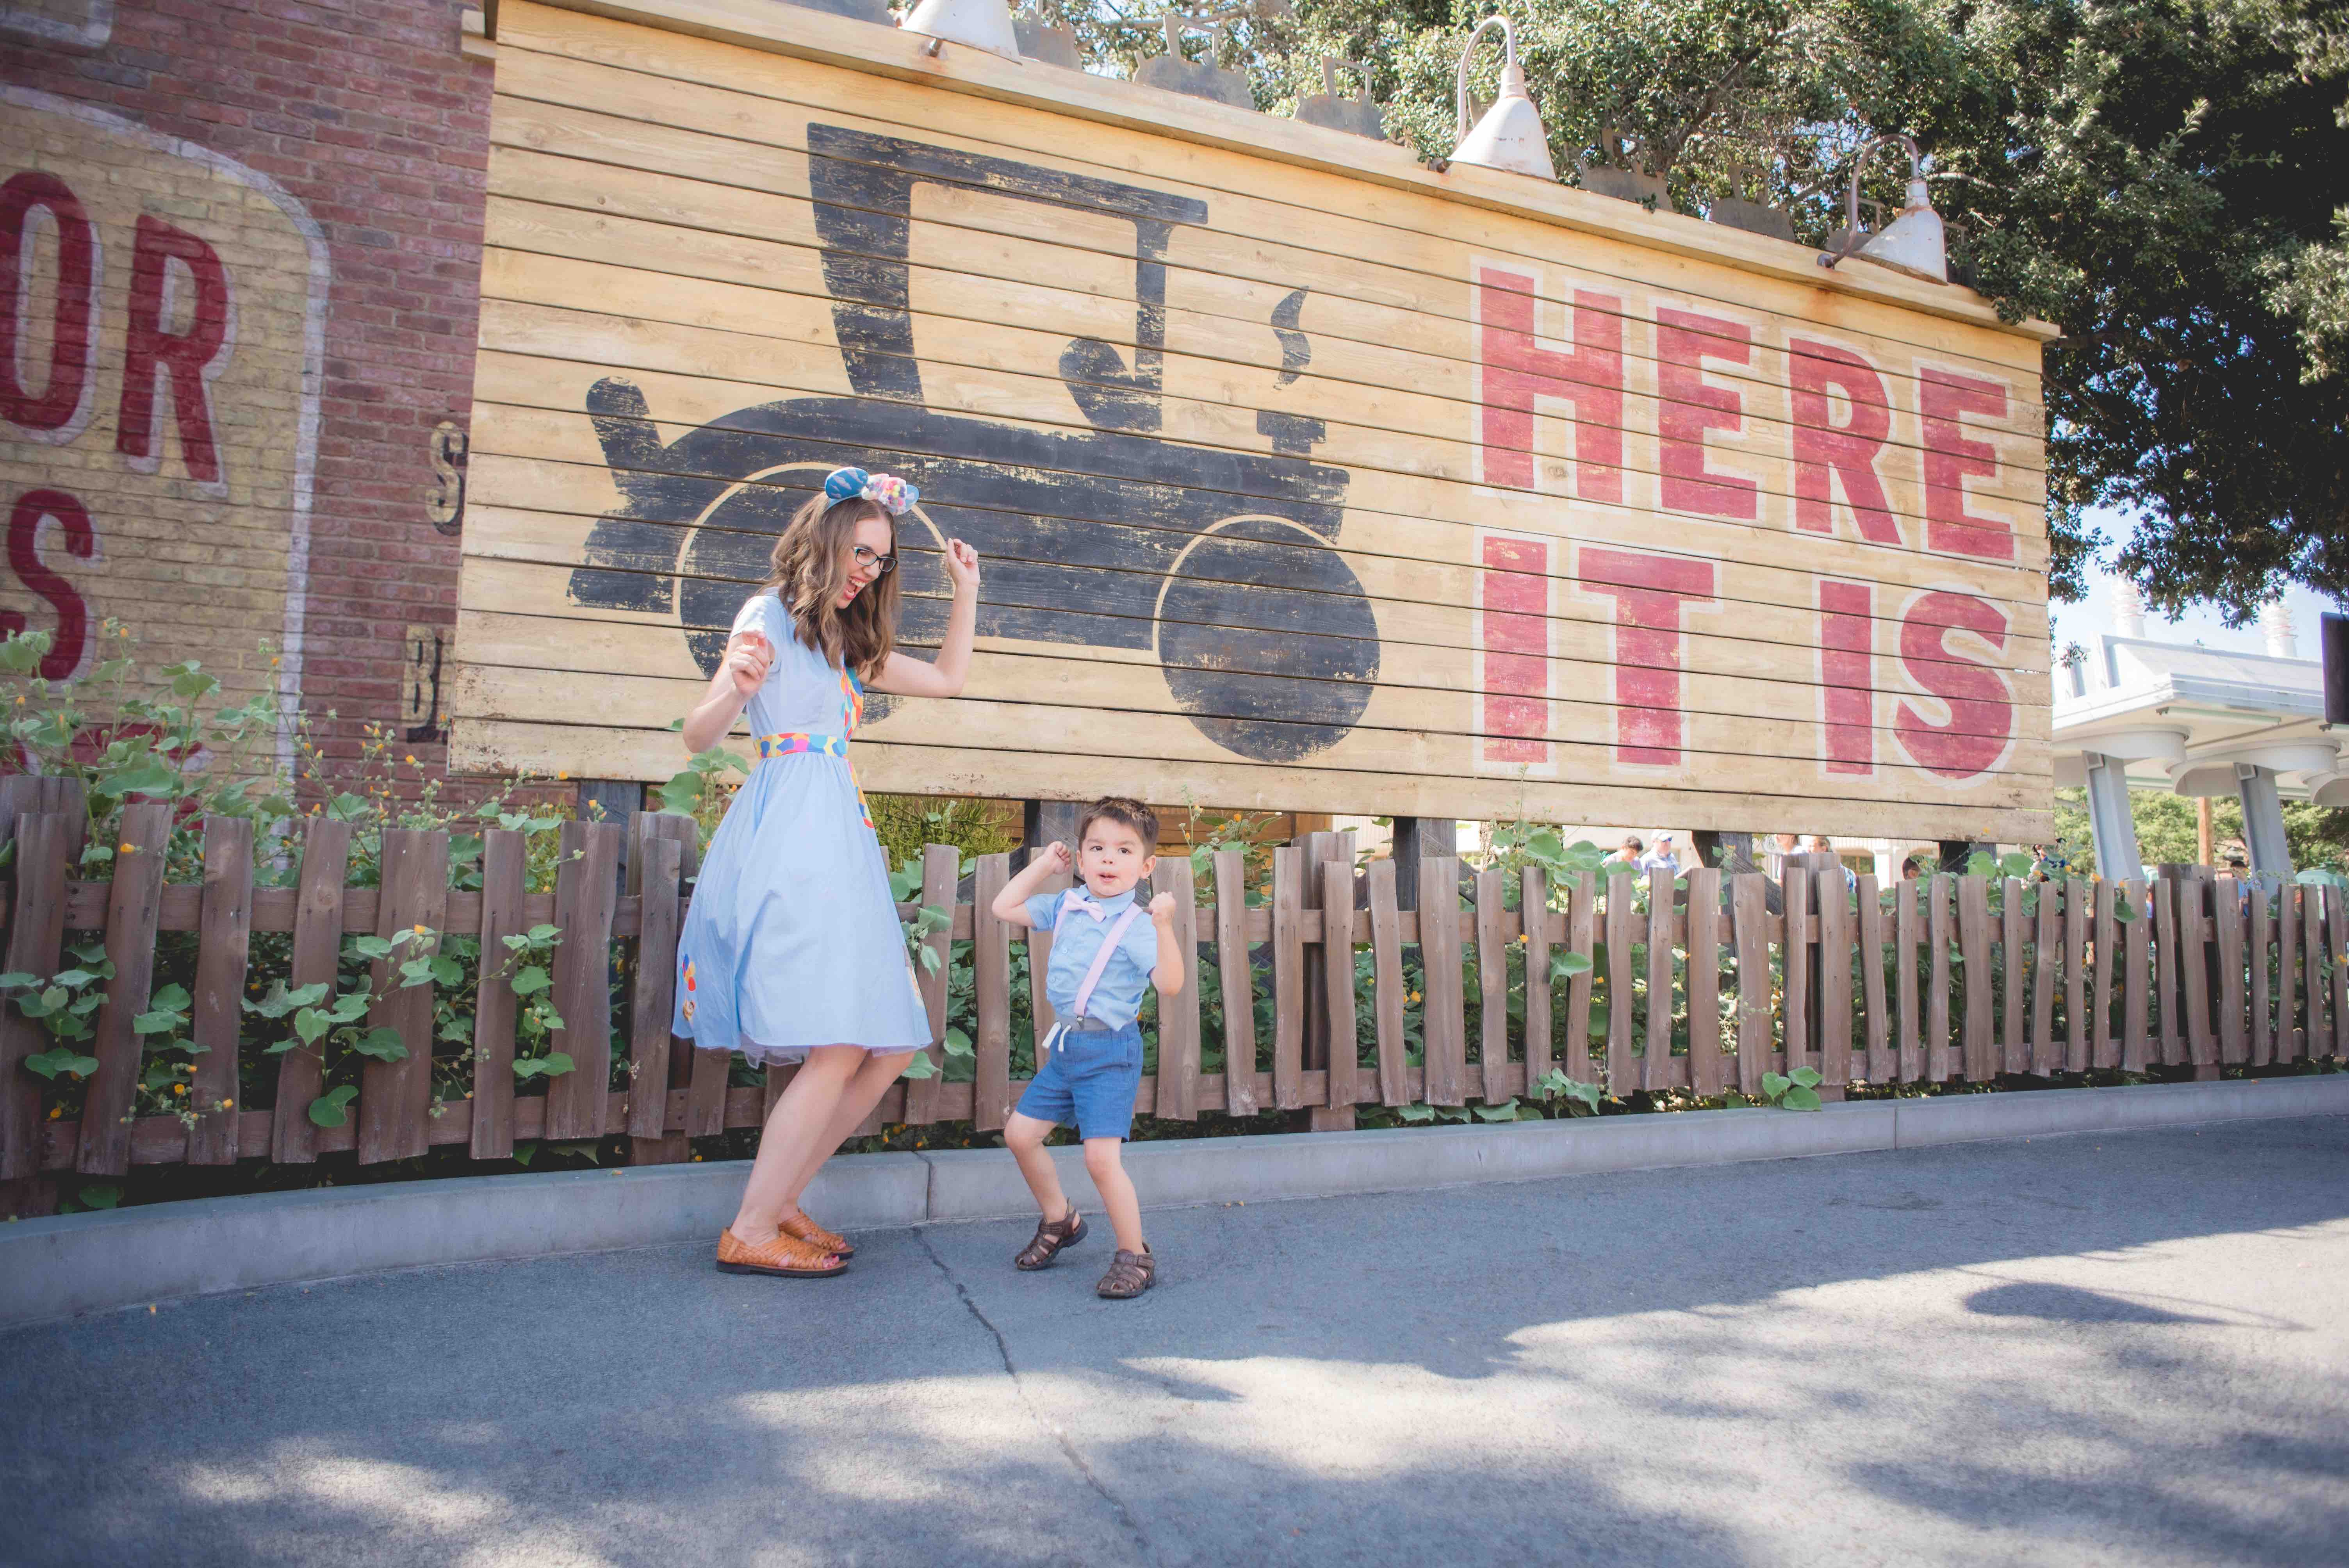 How to Do Disneyland with Toddlers, tips and itinerary featured by top US Disney blogger, Marcie and the Mouse | Take advantage of Magic Mornings and Early Magic Hours at Disneyland